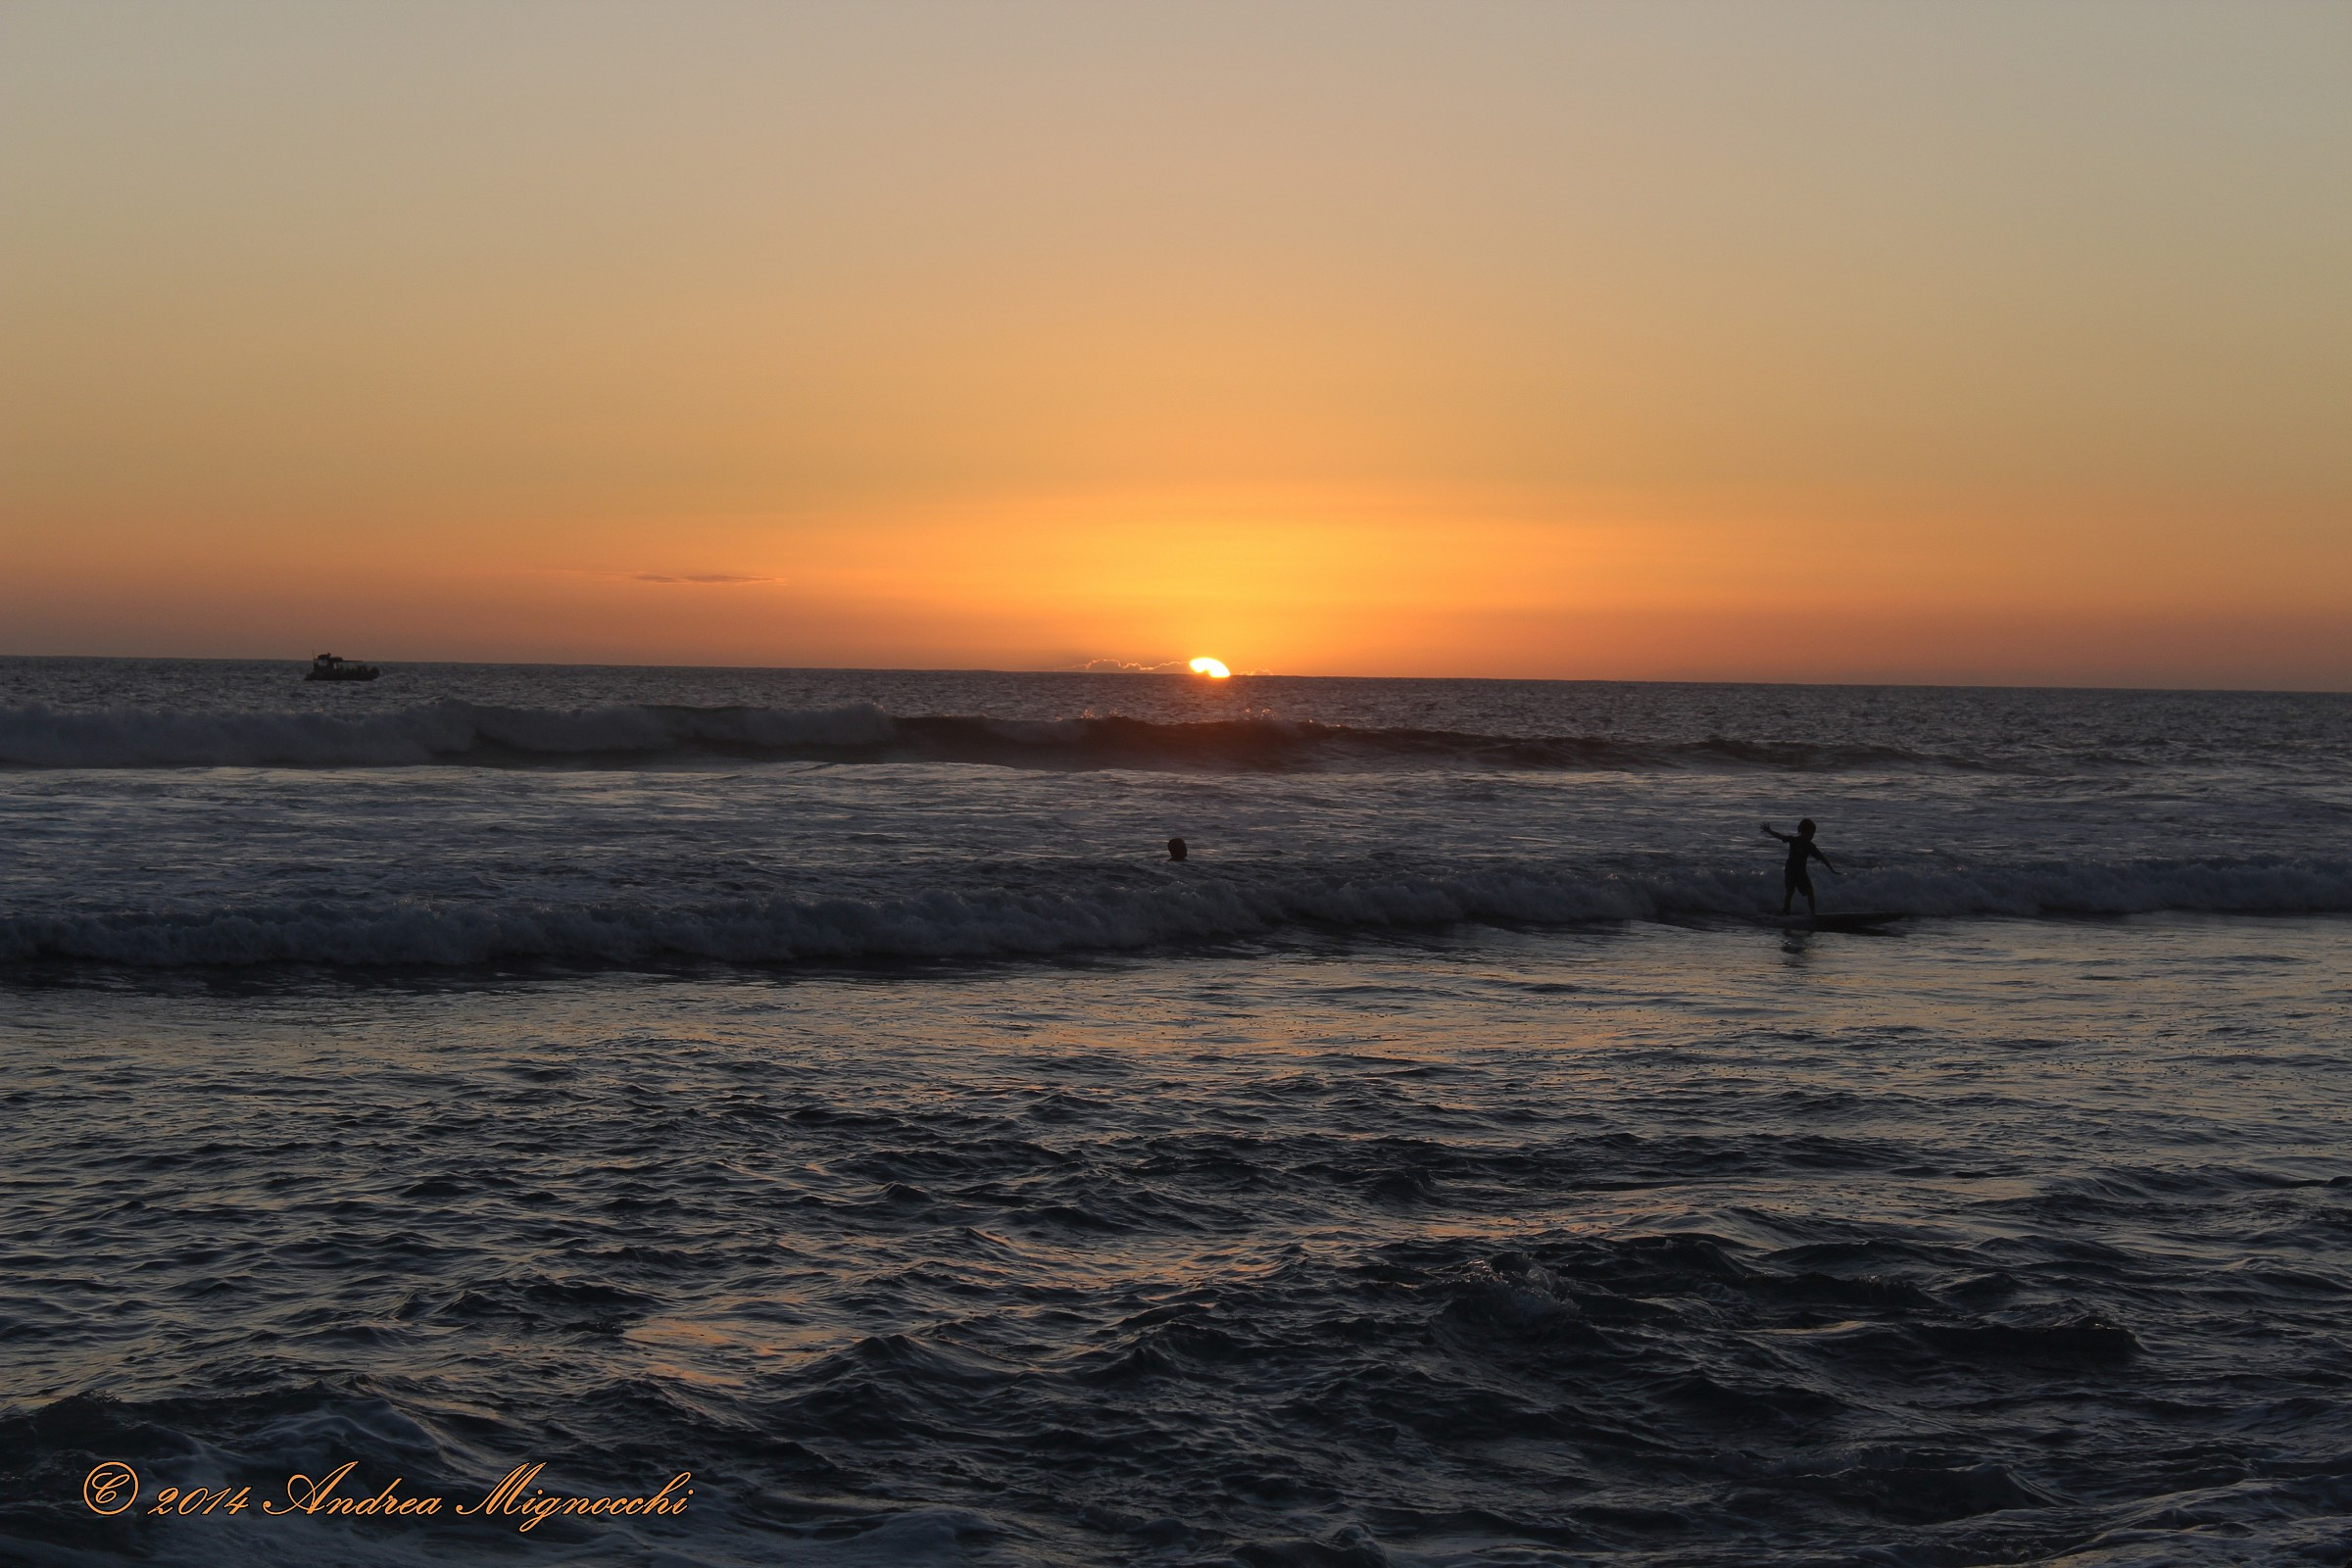 Surfing at sunset...